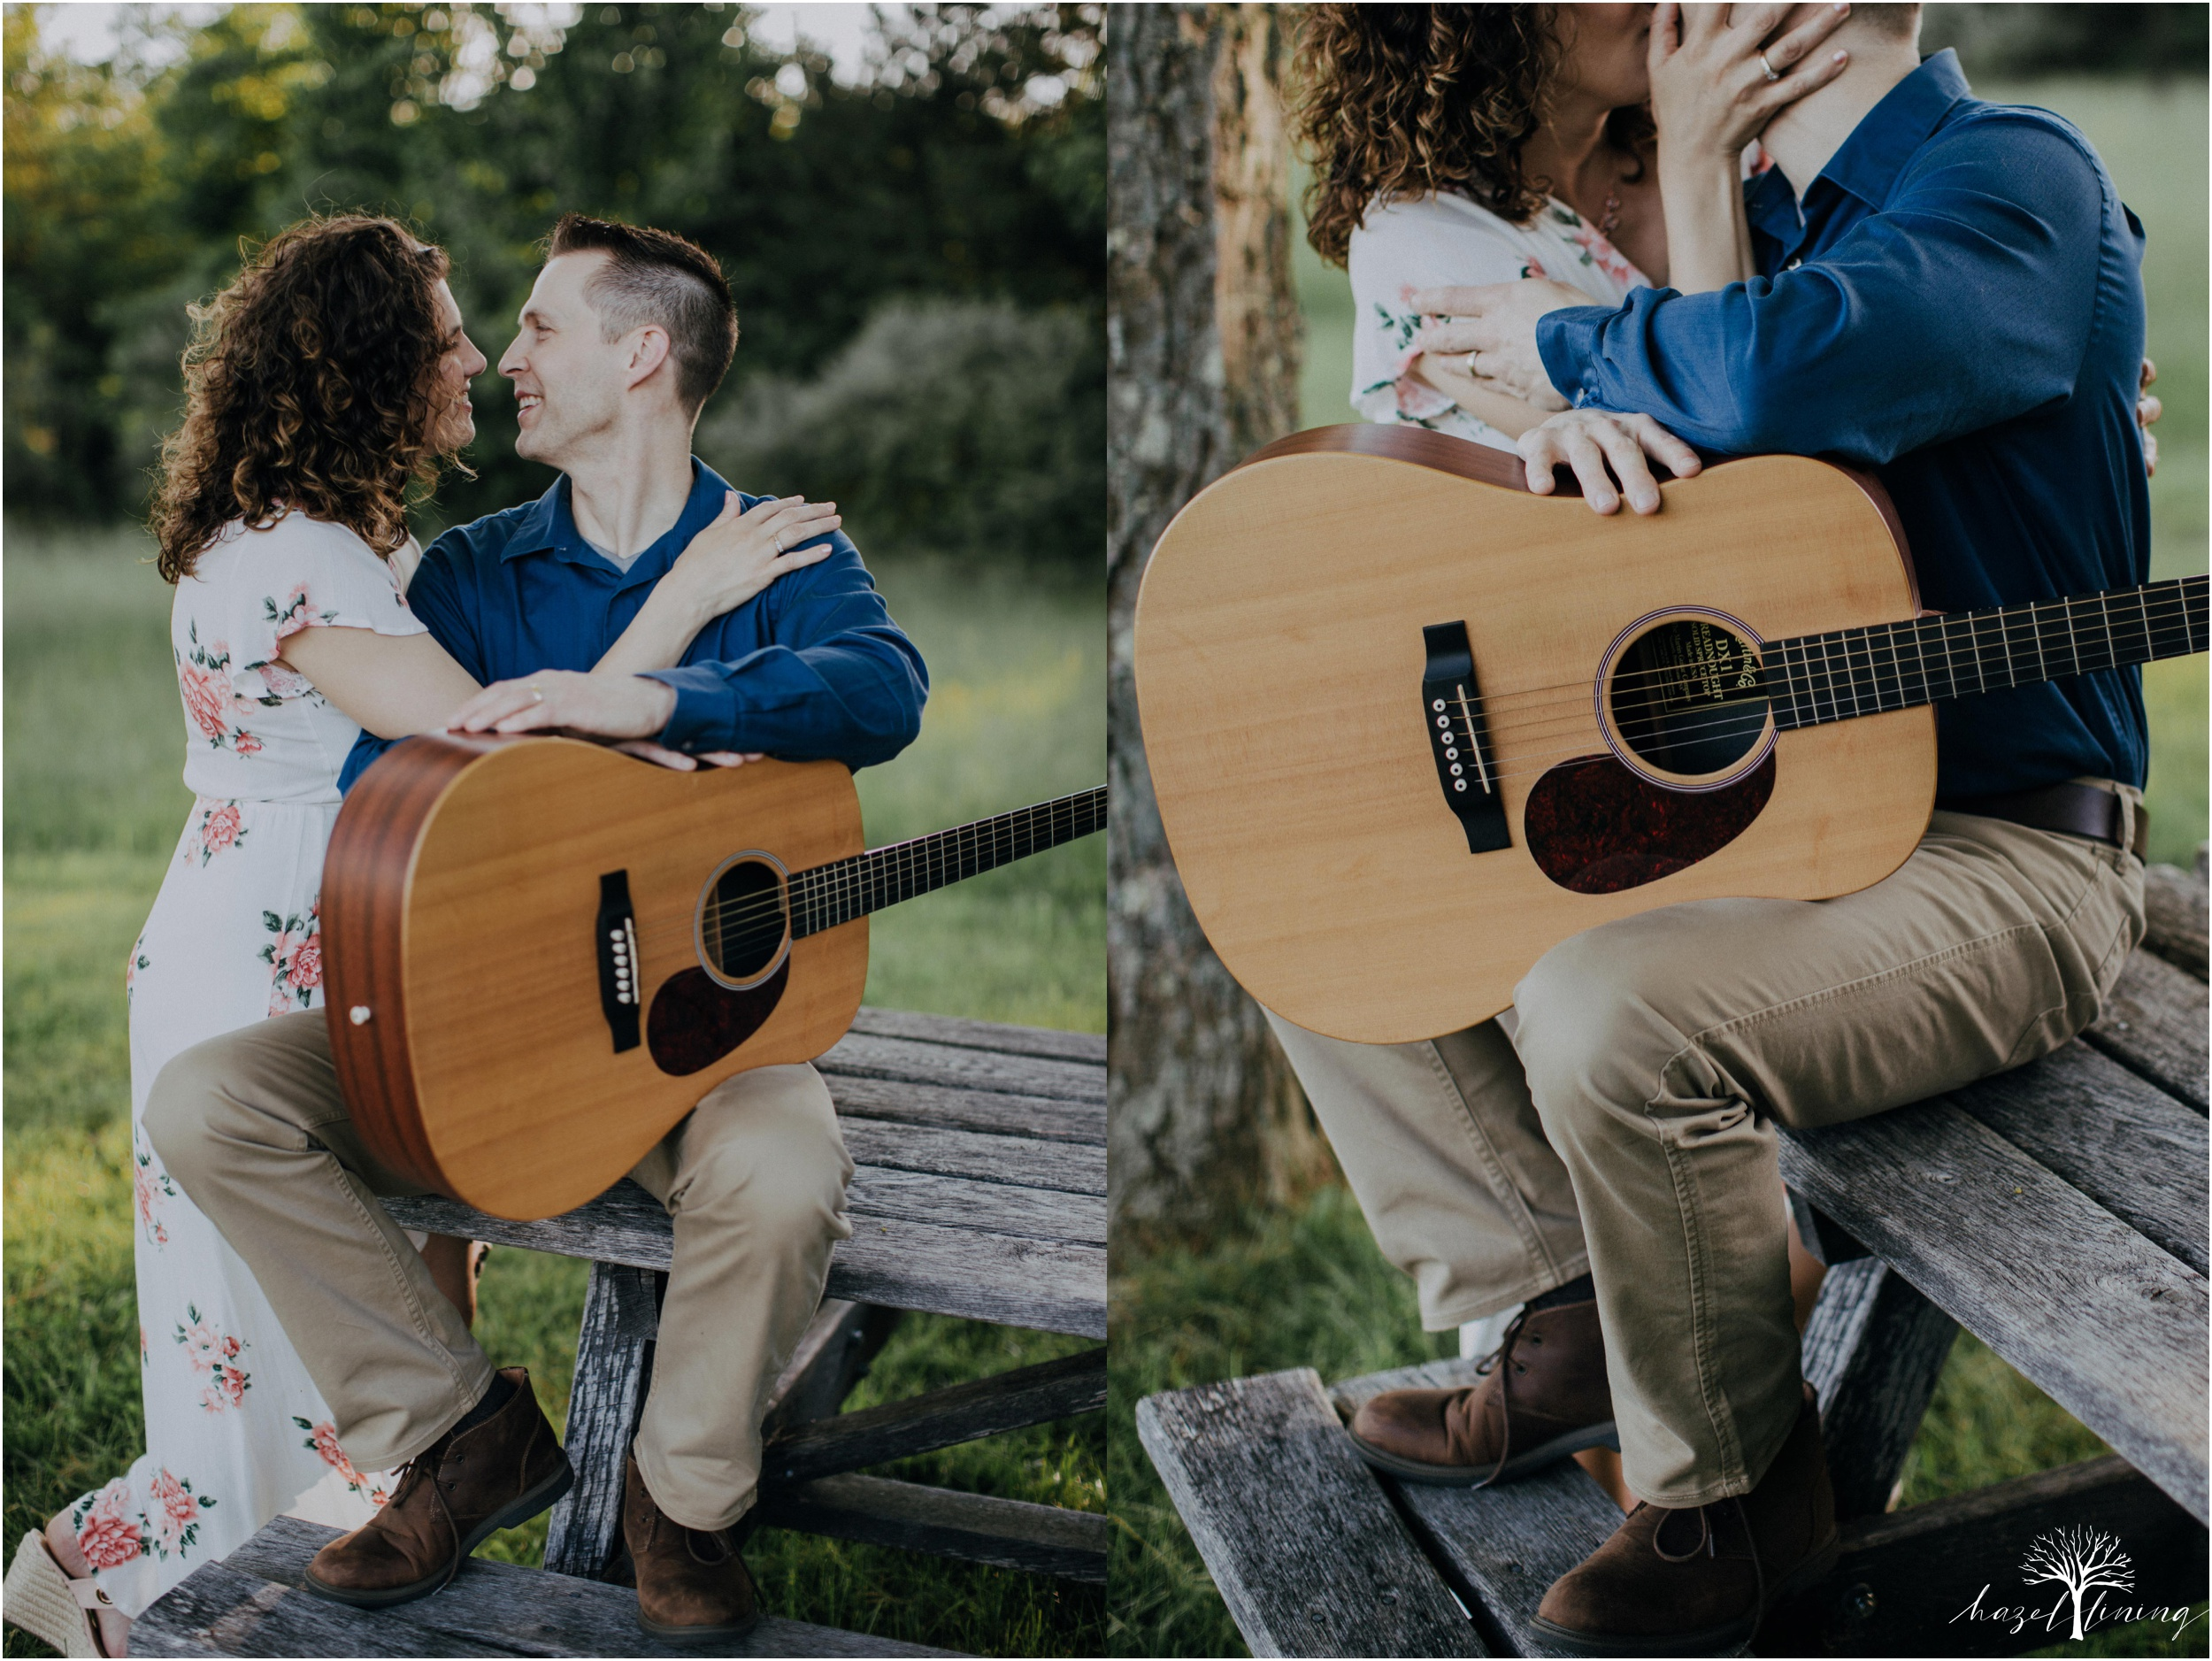 pete-rachelle-sawadski-20-year-anniversary-portrait-session-hazel-lining-photography-destination-elopement-wedding-engagement-photography_0275.jpg